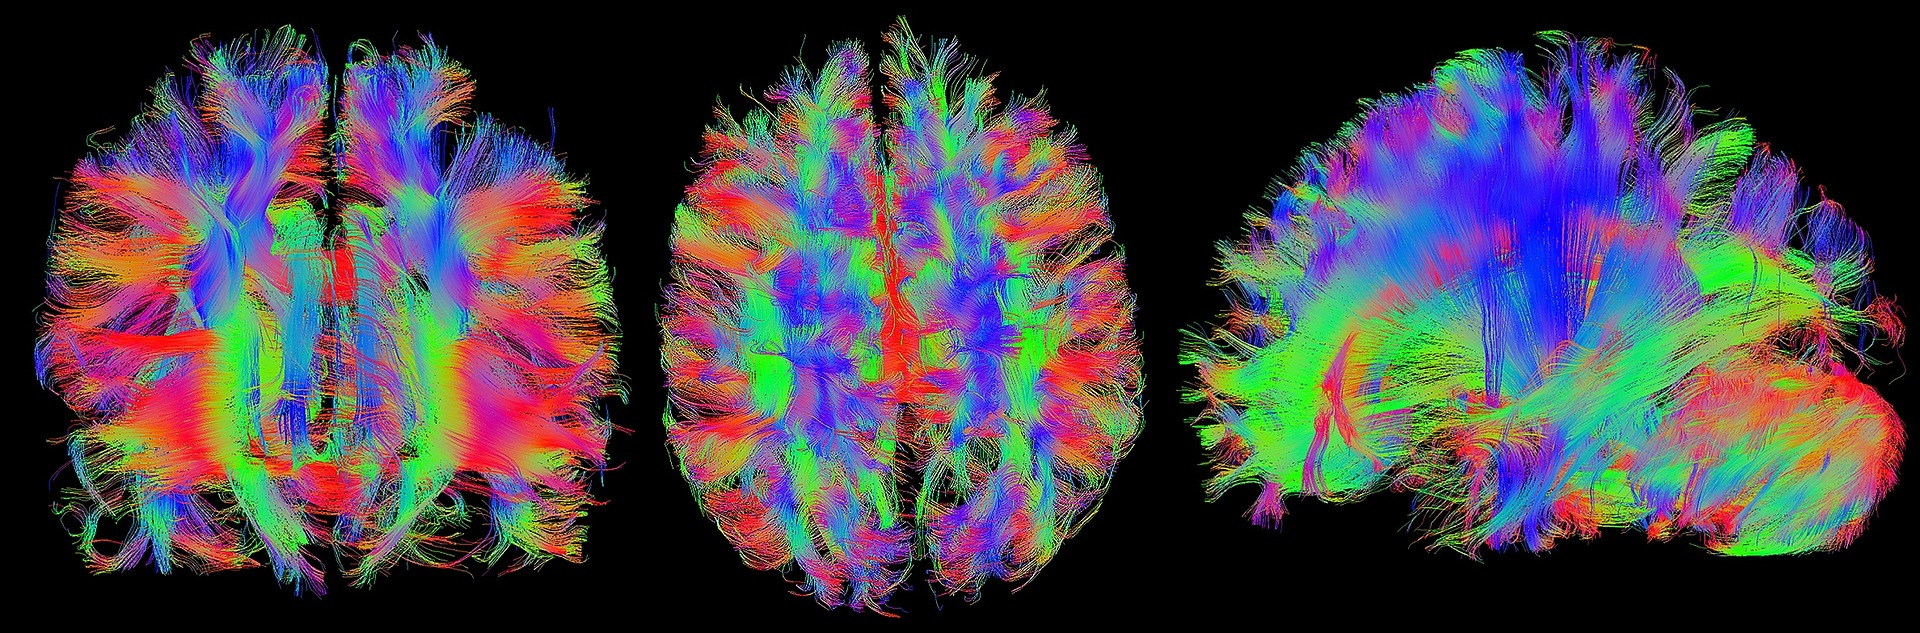 fluorescent colored brain illustrations